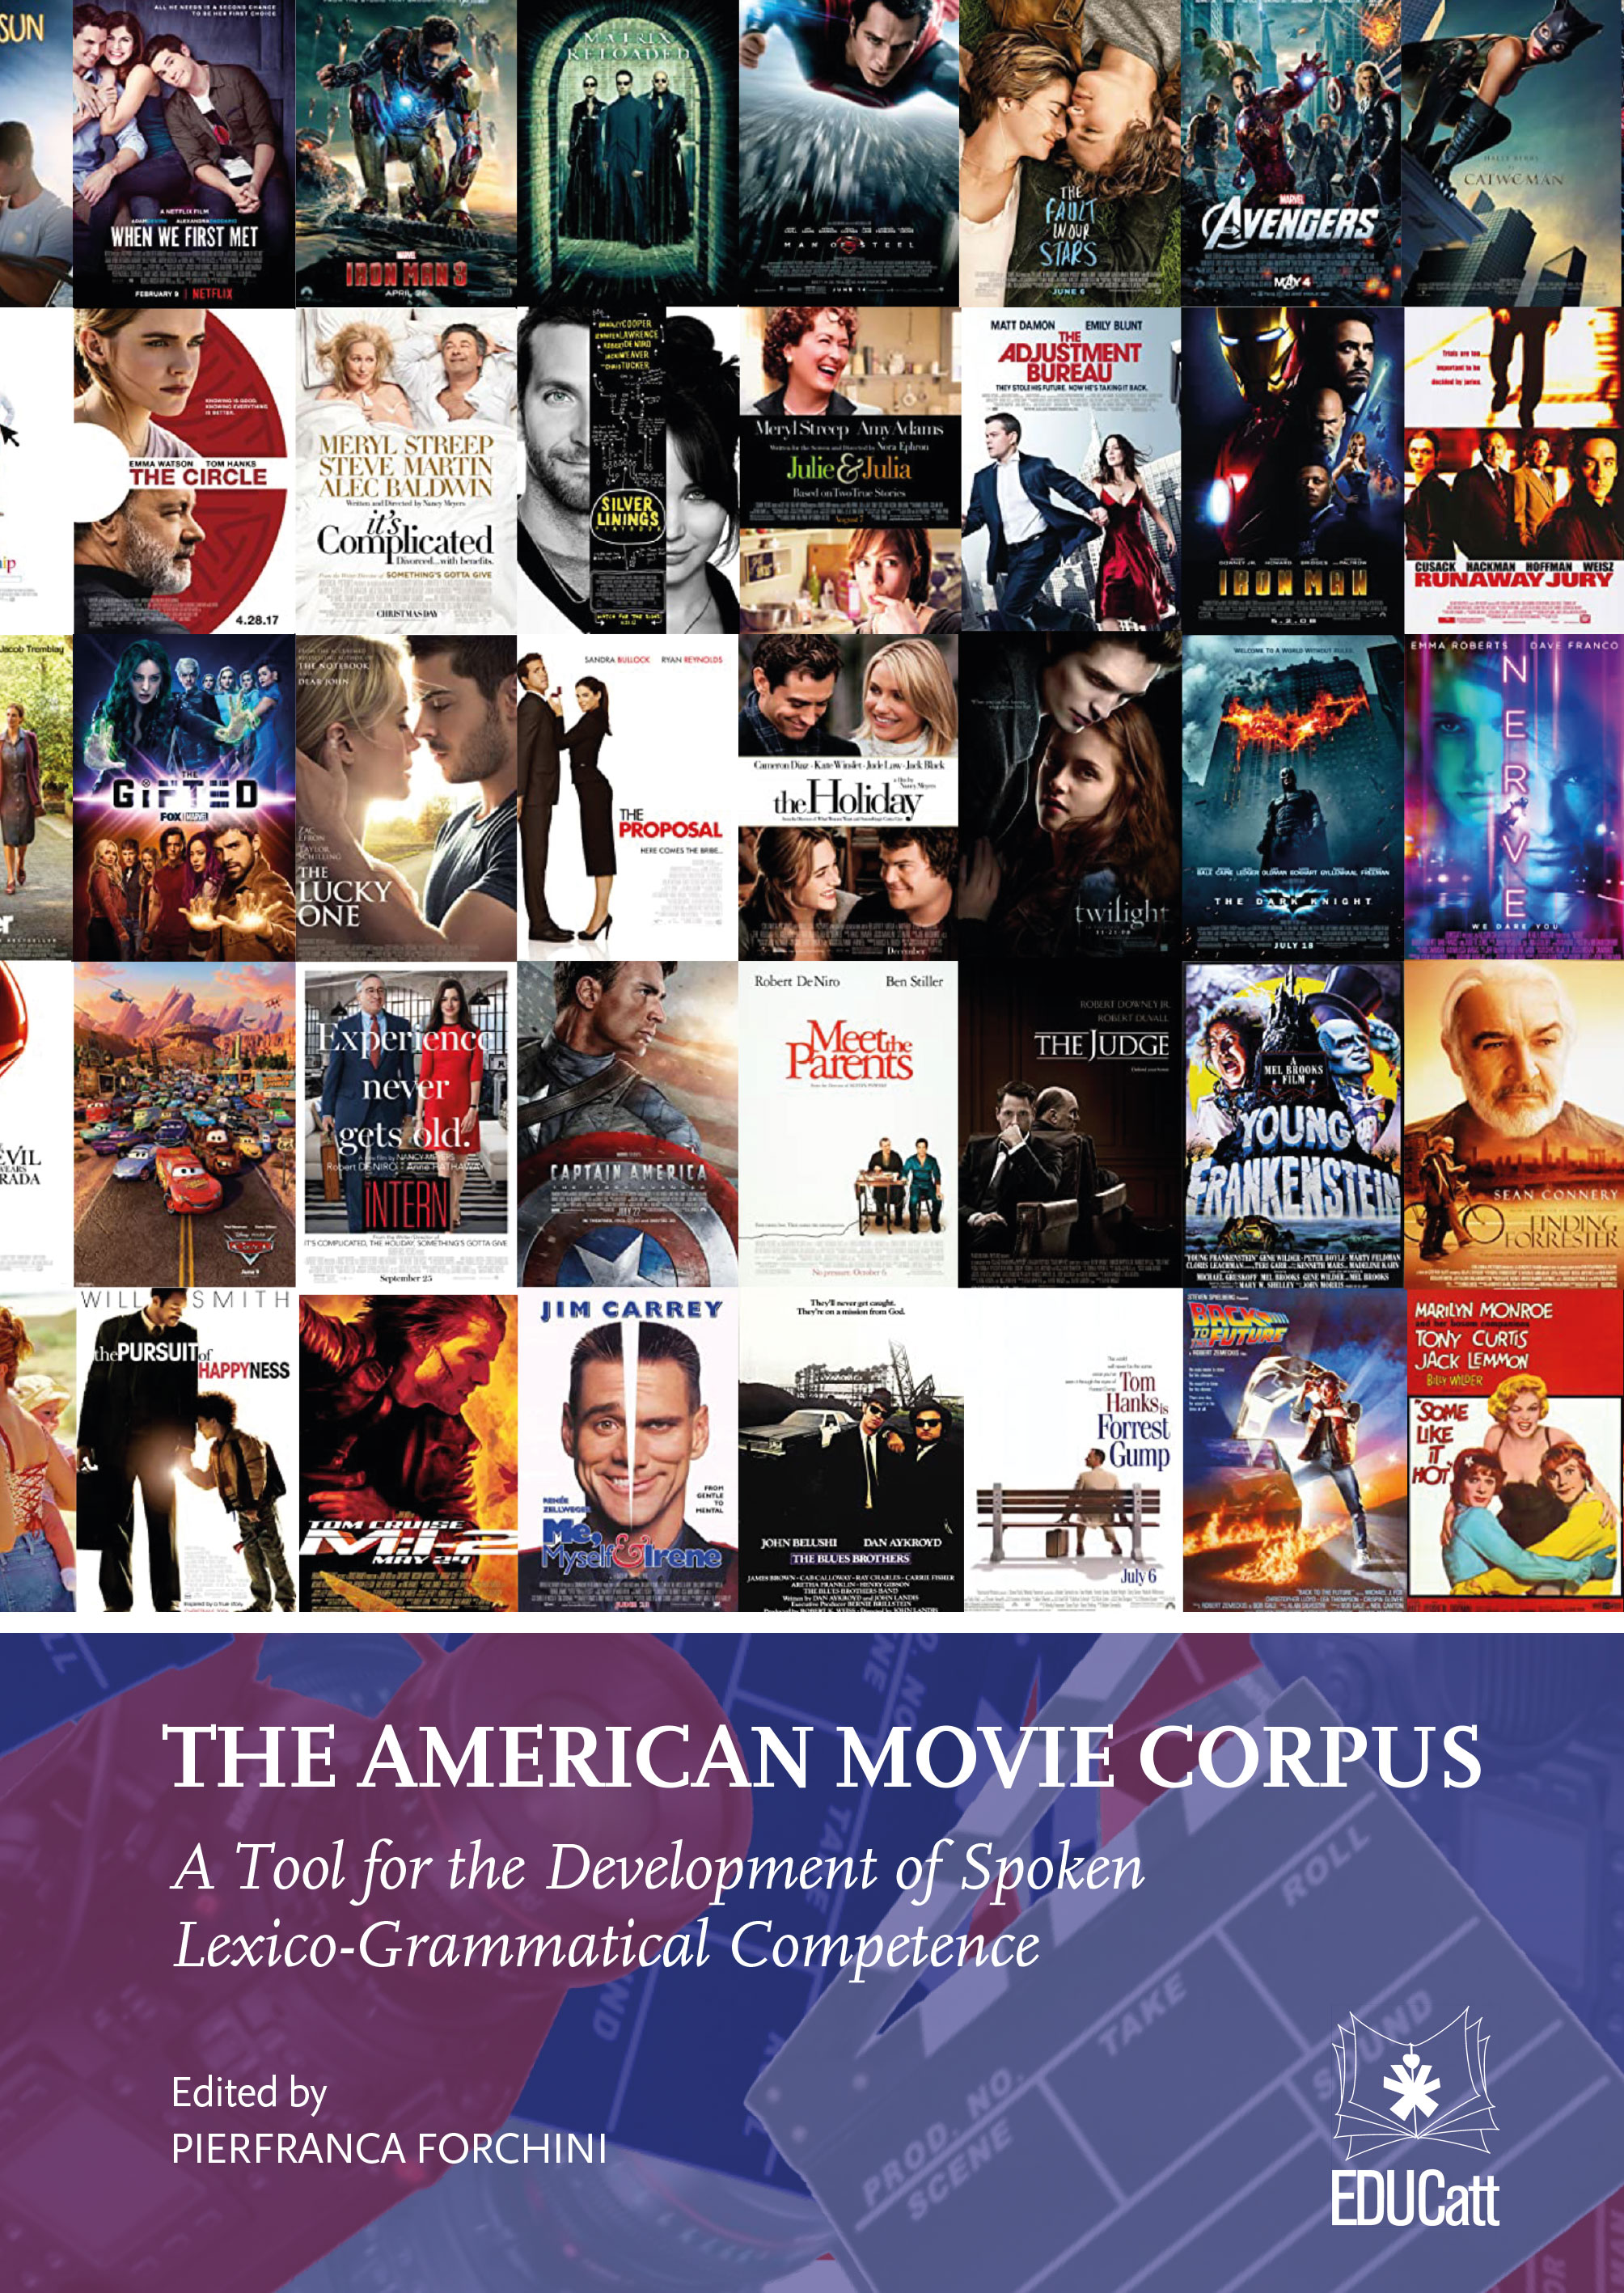 THE AMERICAN MOVIE CORPUS. A TOOL FOR THE DEVELOPMENT OF SPOKEN LEXICO-GRAMMATICAL COMPETENCE